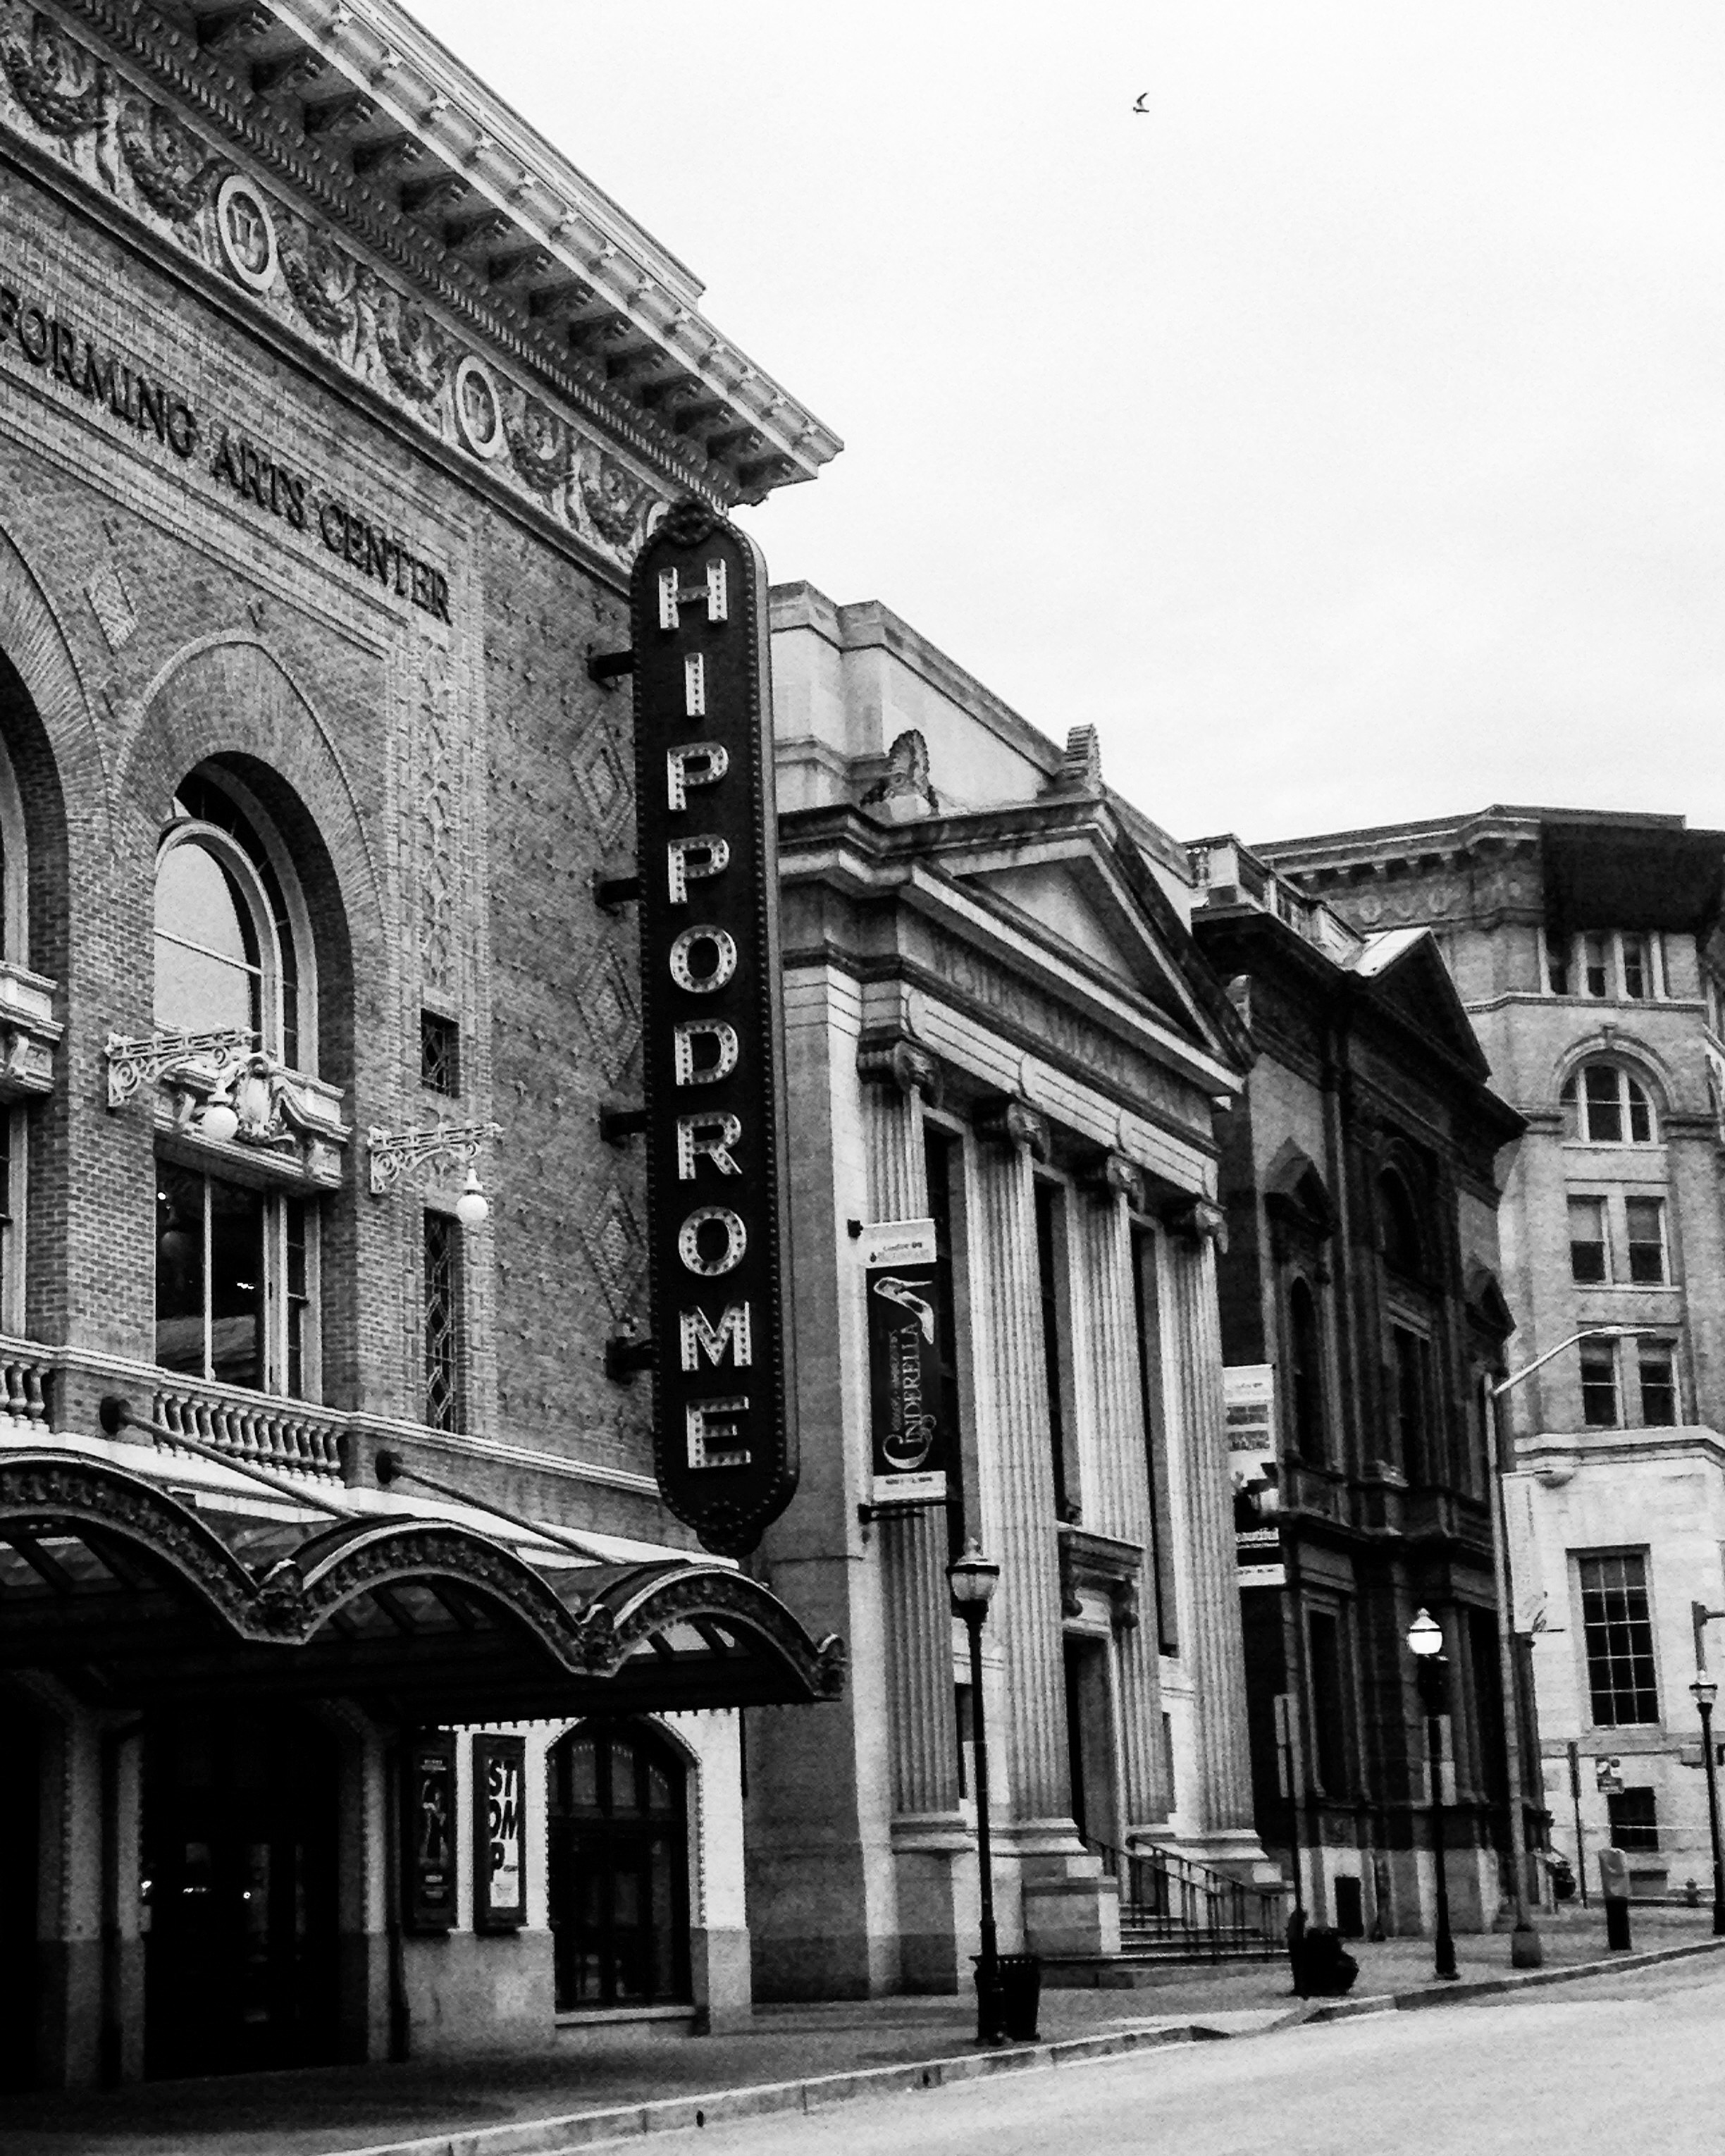 Hippodrome, Baltimore, B/W by Becca Andre